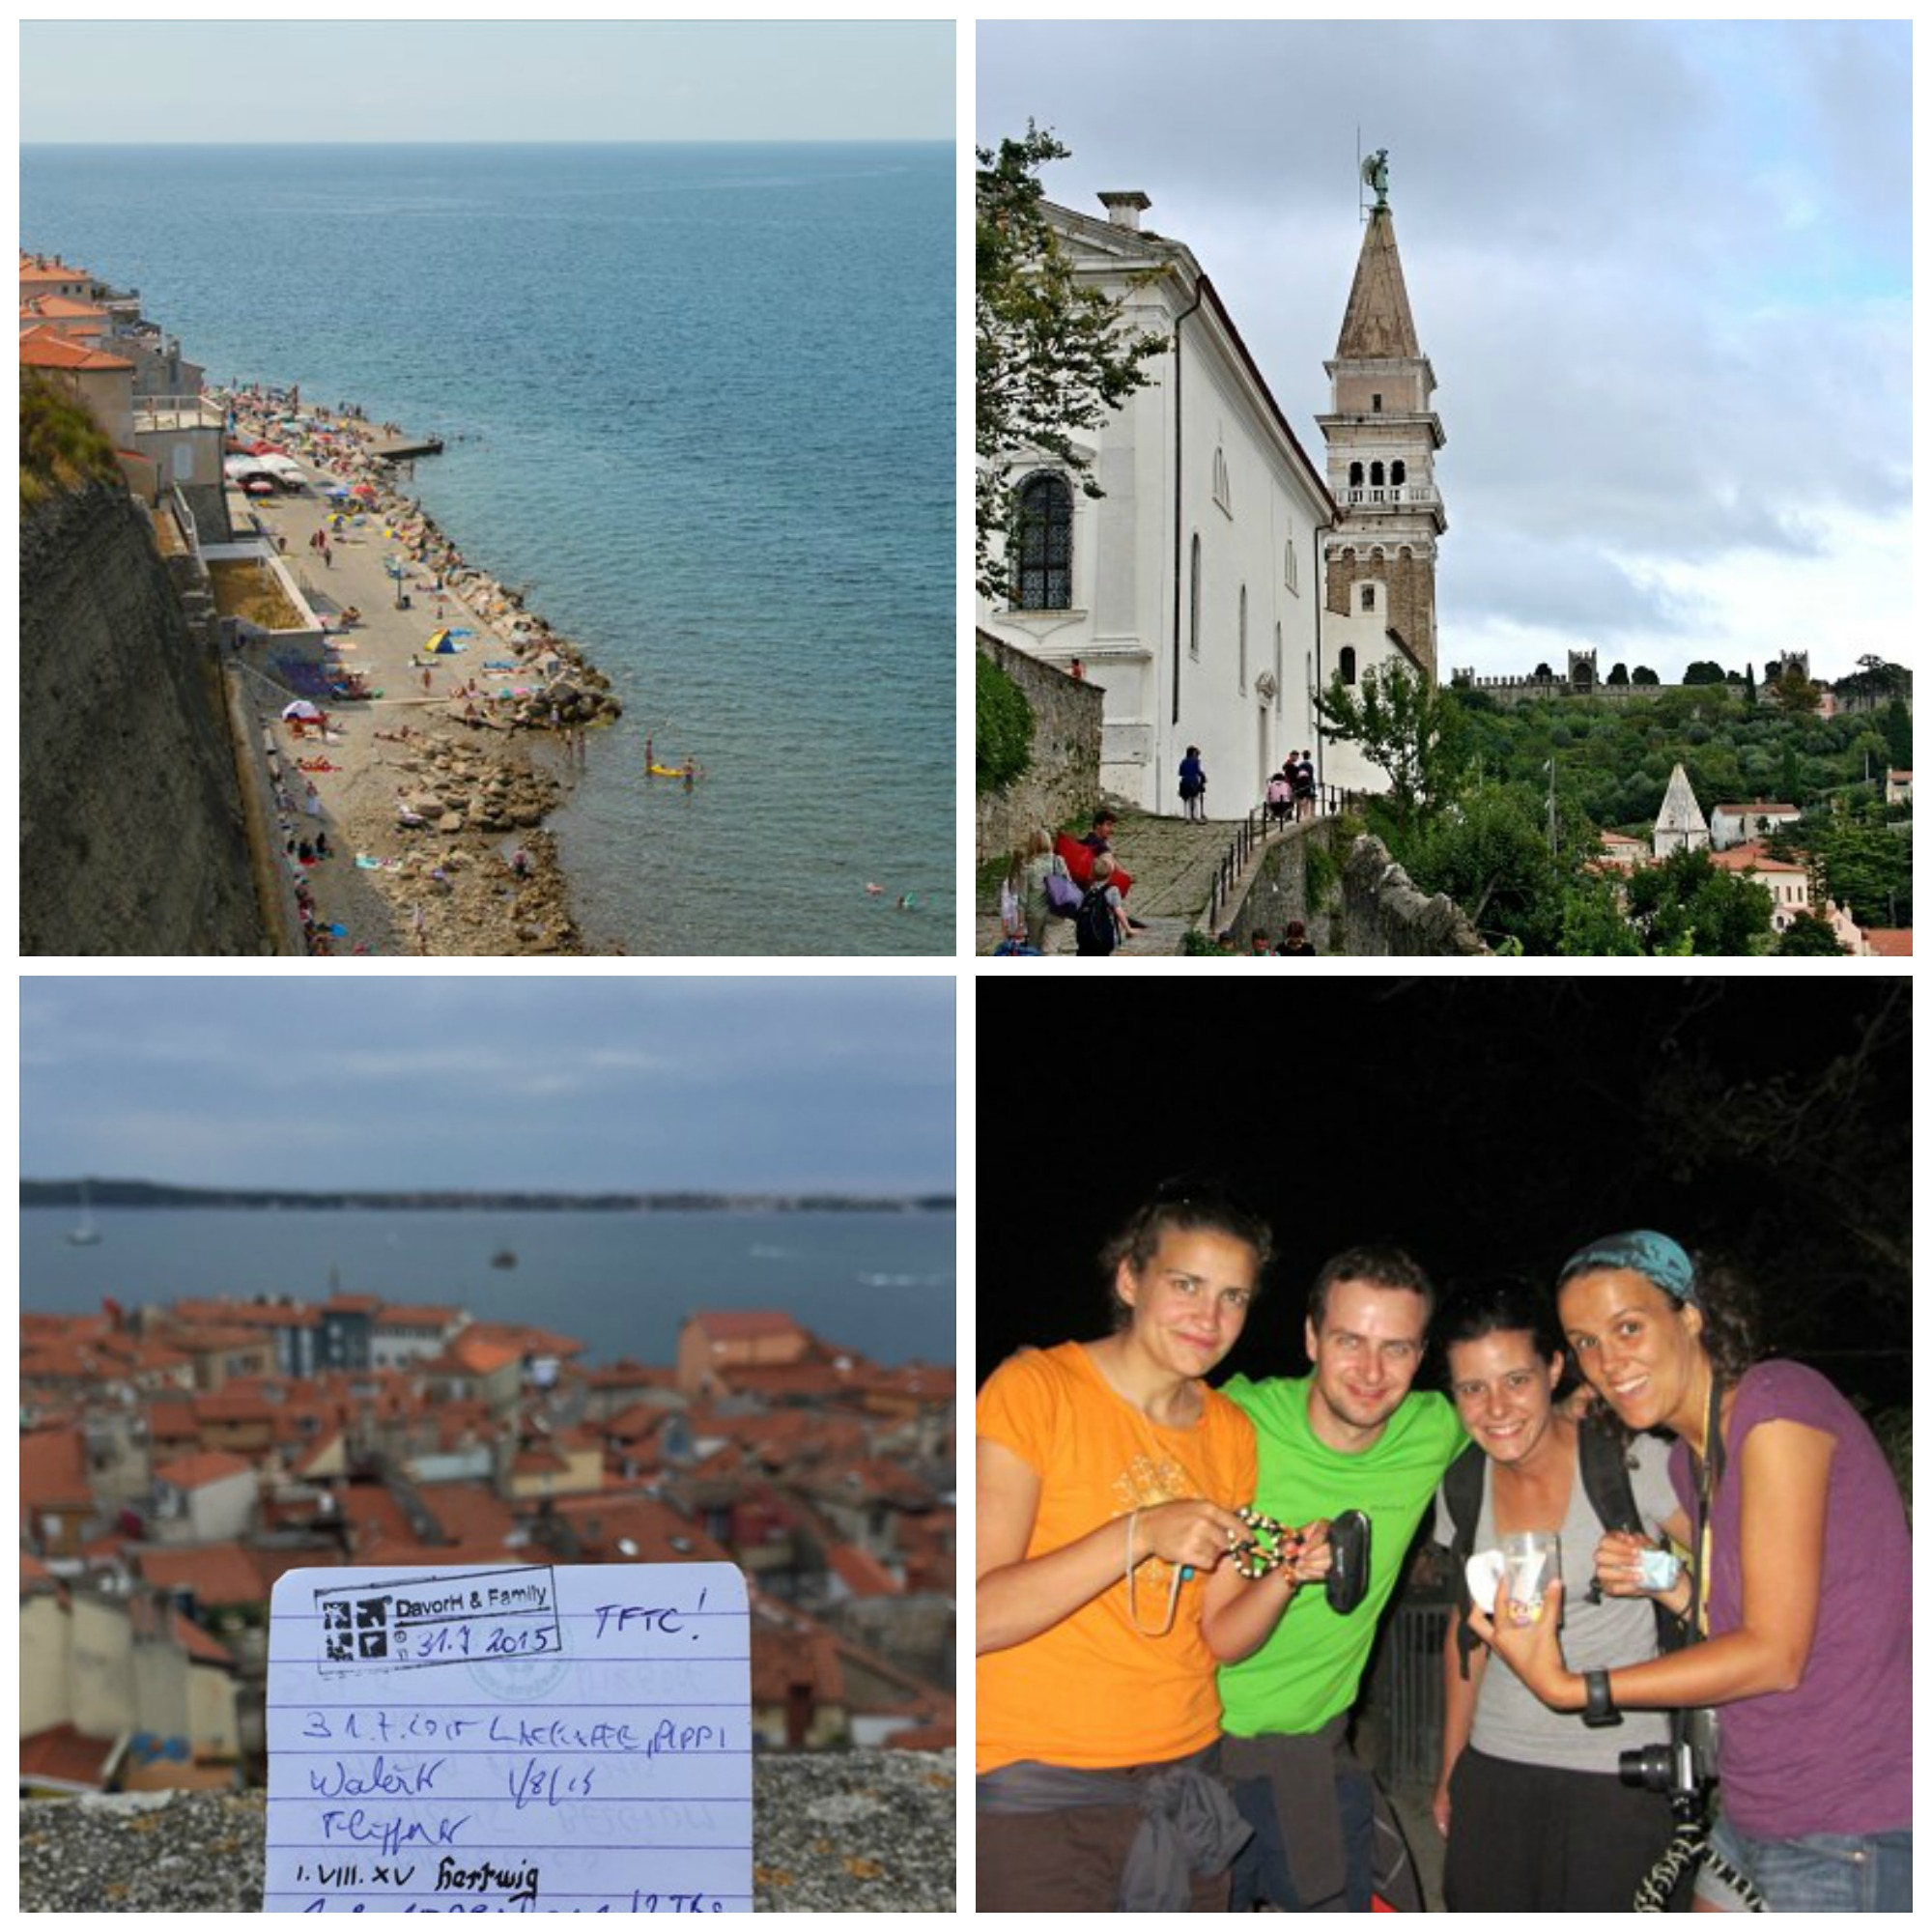 GC3QWBD Morigenos is a Traditional Cache in the seaside town of Piran